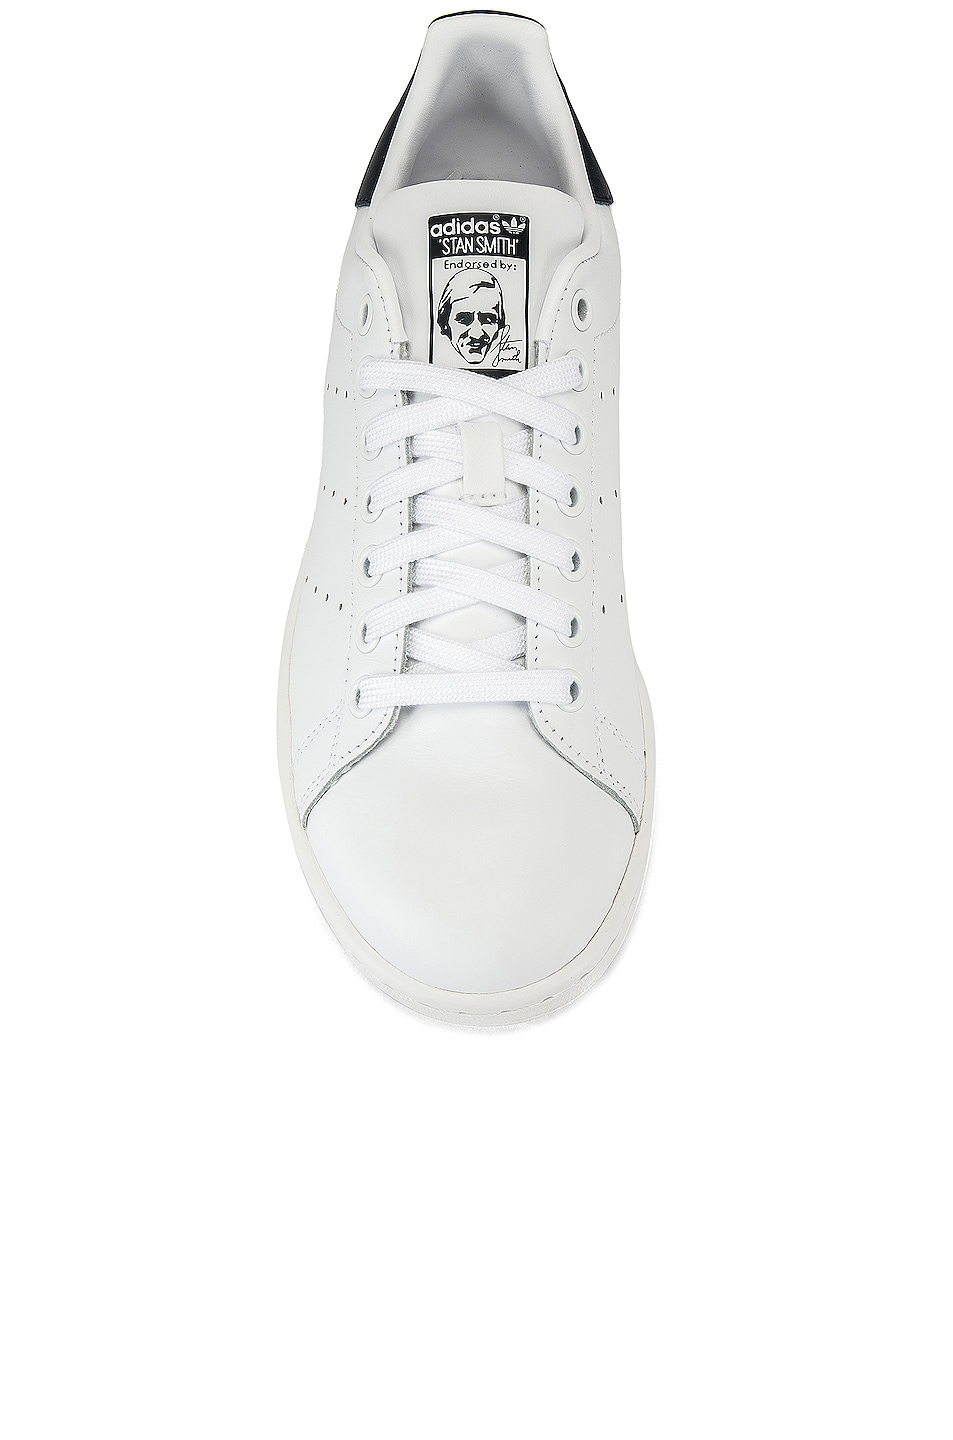 Image 4 of adidas Originals Stan Smith in White & Dark Blue